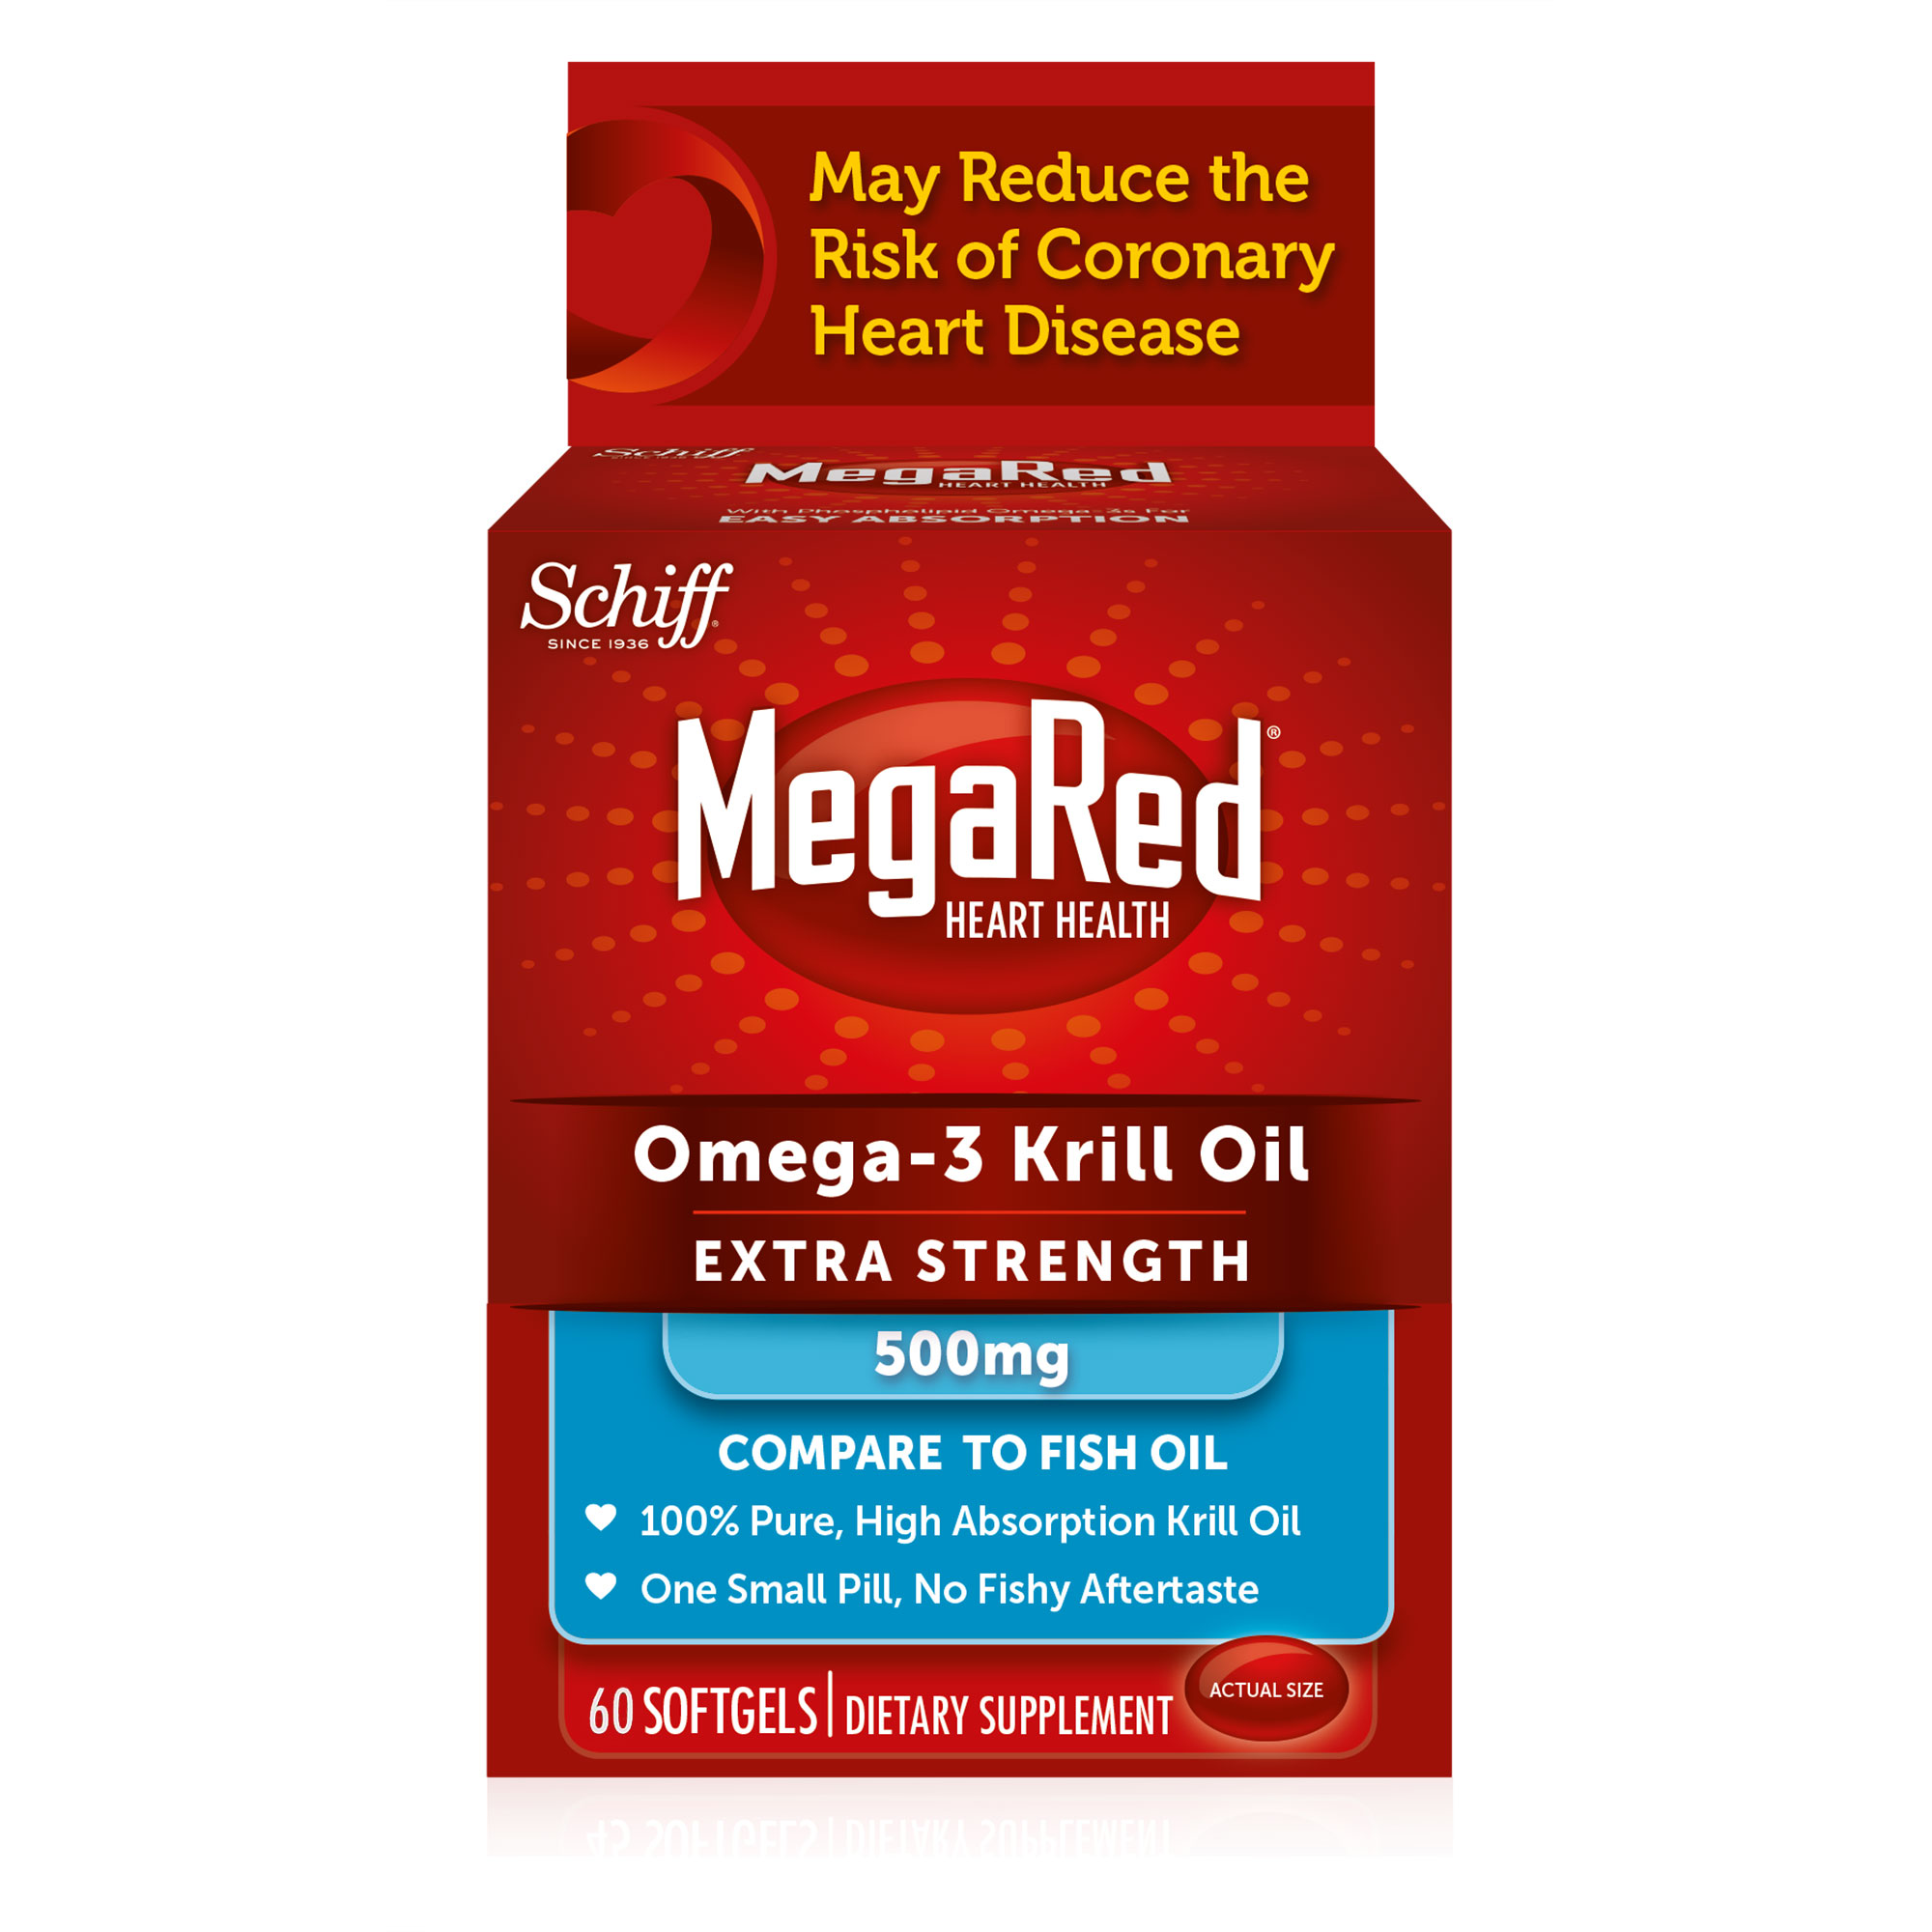 MegaRed Heart Health Omega-3 Krill Oil Extra Strength Softgel 500mg, 60ct